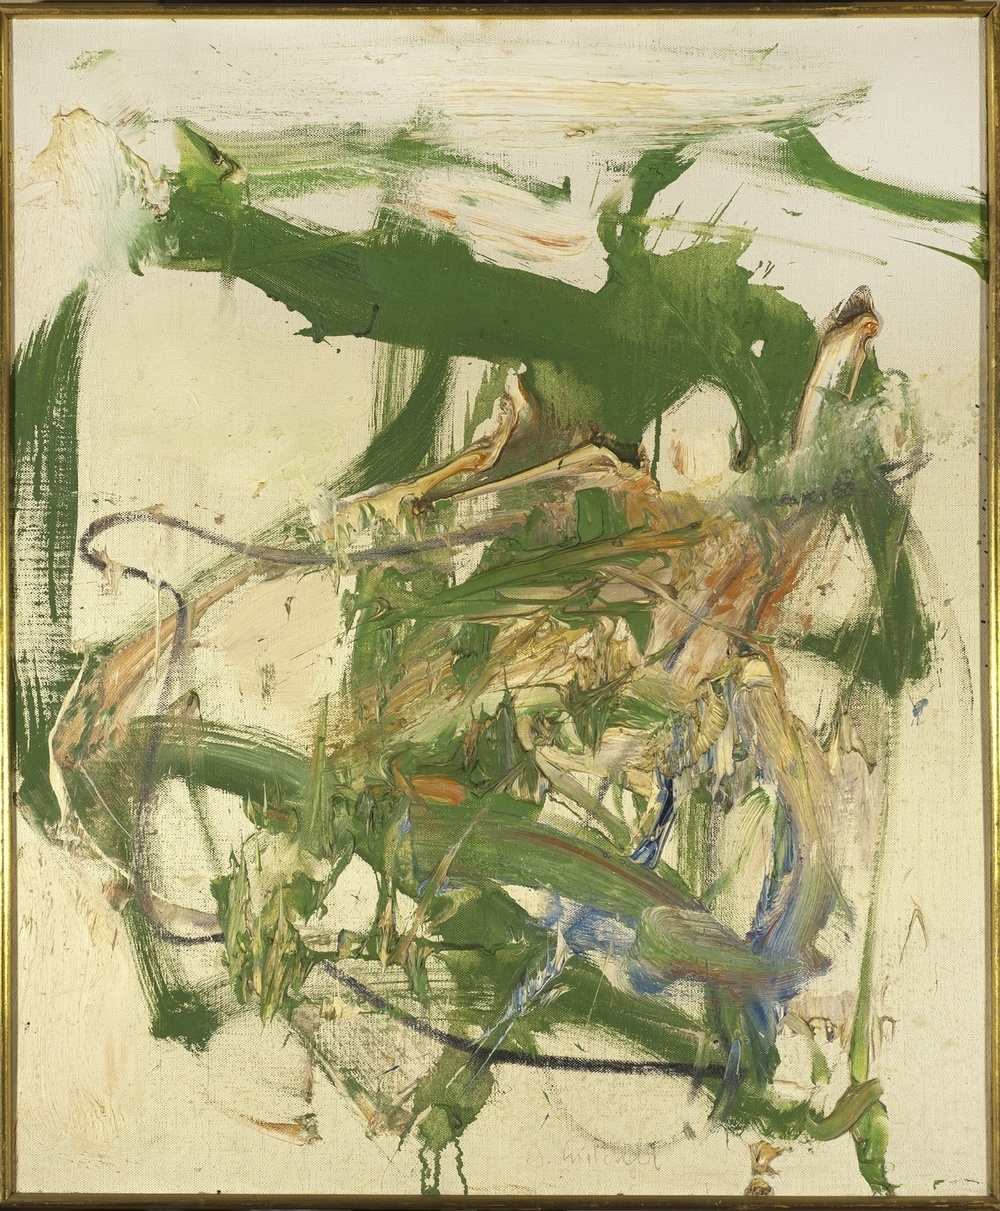 Joan Mitchell, Sans titre, vers 1959-1962. Huile sur toile, 46 x 38 cm.. Signé en bas vers le centre. Contresigné sur le châssis de l'oeuvre. Musée de l'Hospice Saint-Roch, Issoudun. Inv. 2015.8.55. Zao Wou-Ki collectionneur / Collection du Musée de l'Hospice Saint-Roch. Donation Fondation Zao Wou-Ki © Photographe Antoine Mercier © ADAGP, Paris, 2016.